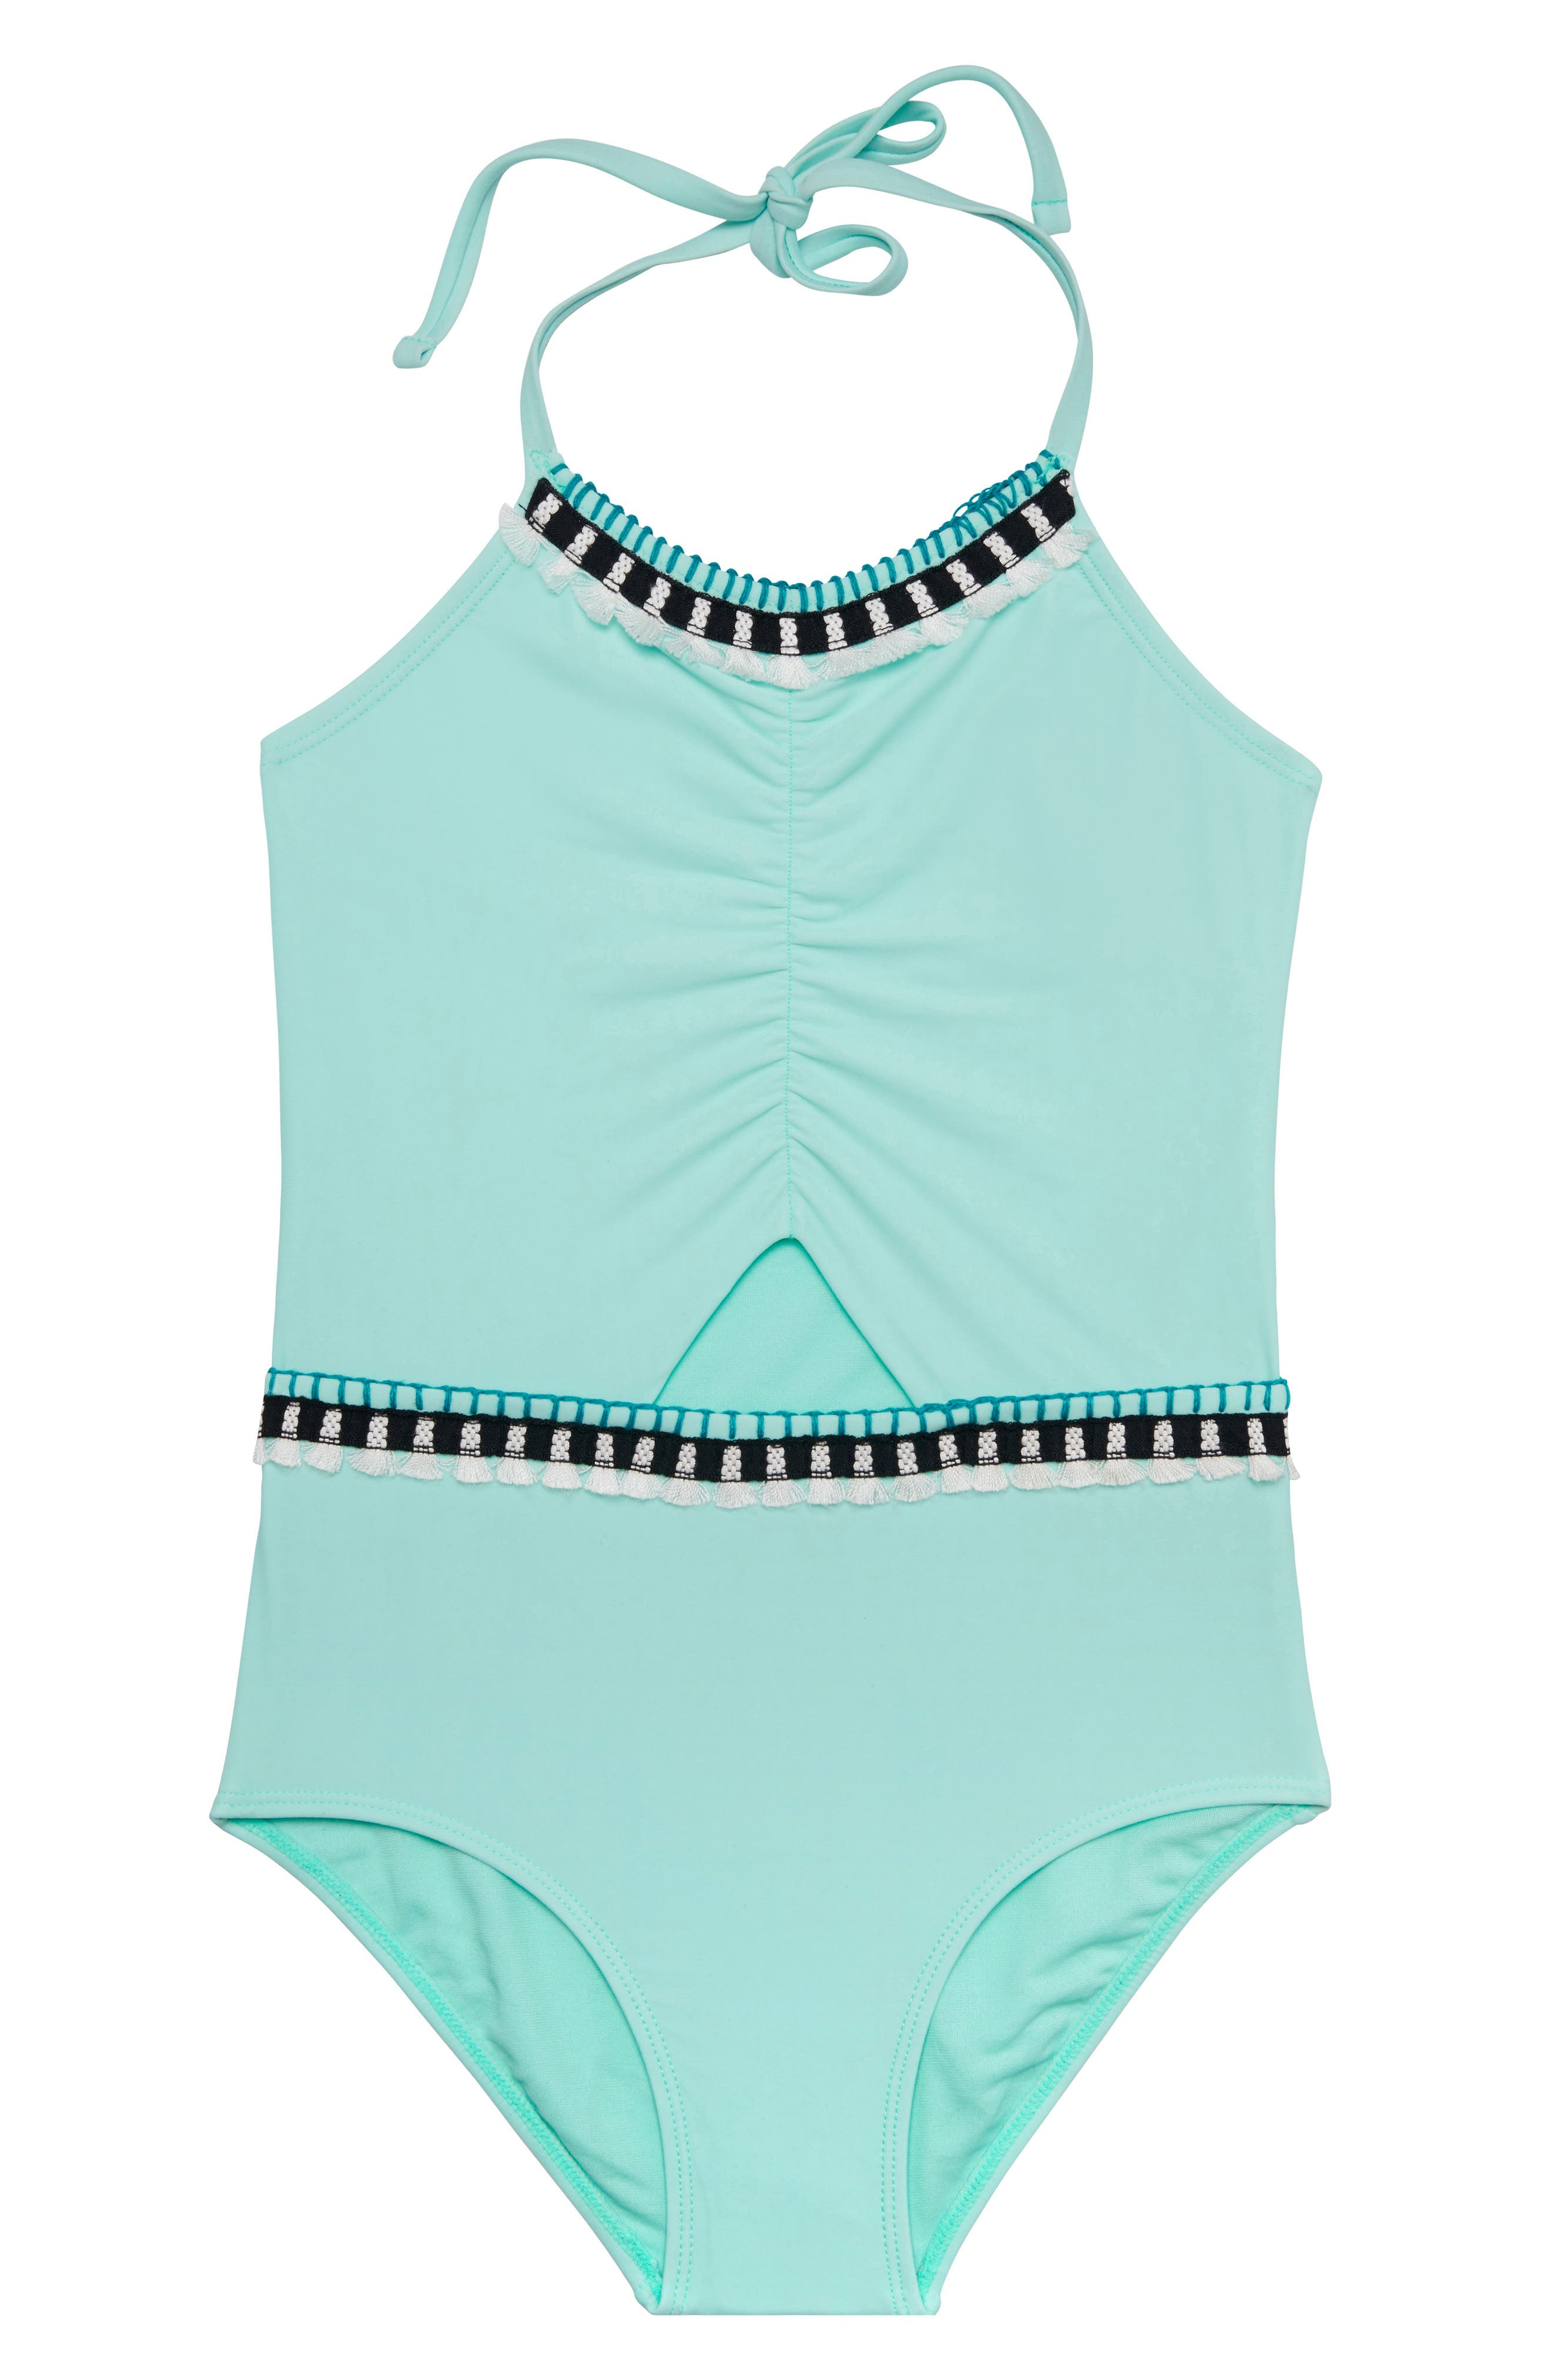 GOSSIP GIRL, Tassel Party One-Piece Swimsuit, Main thumbnail 1, color, BLUE